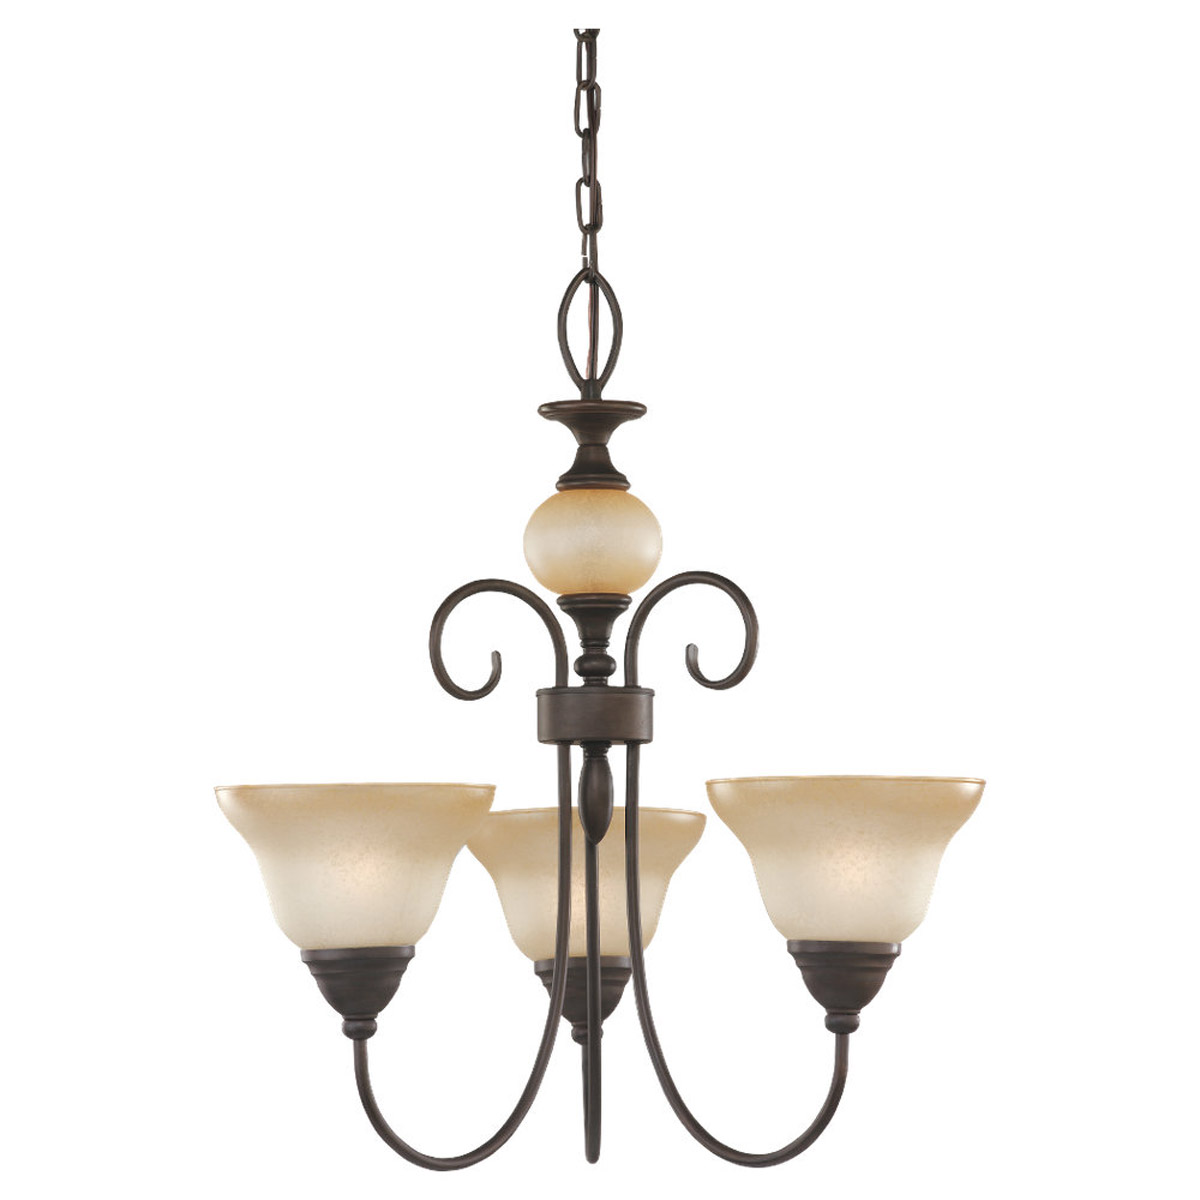 Sea Gull Lighting Montclaire 3 Light Chandelier in Olde Iron 31105-72 photo